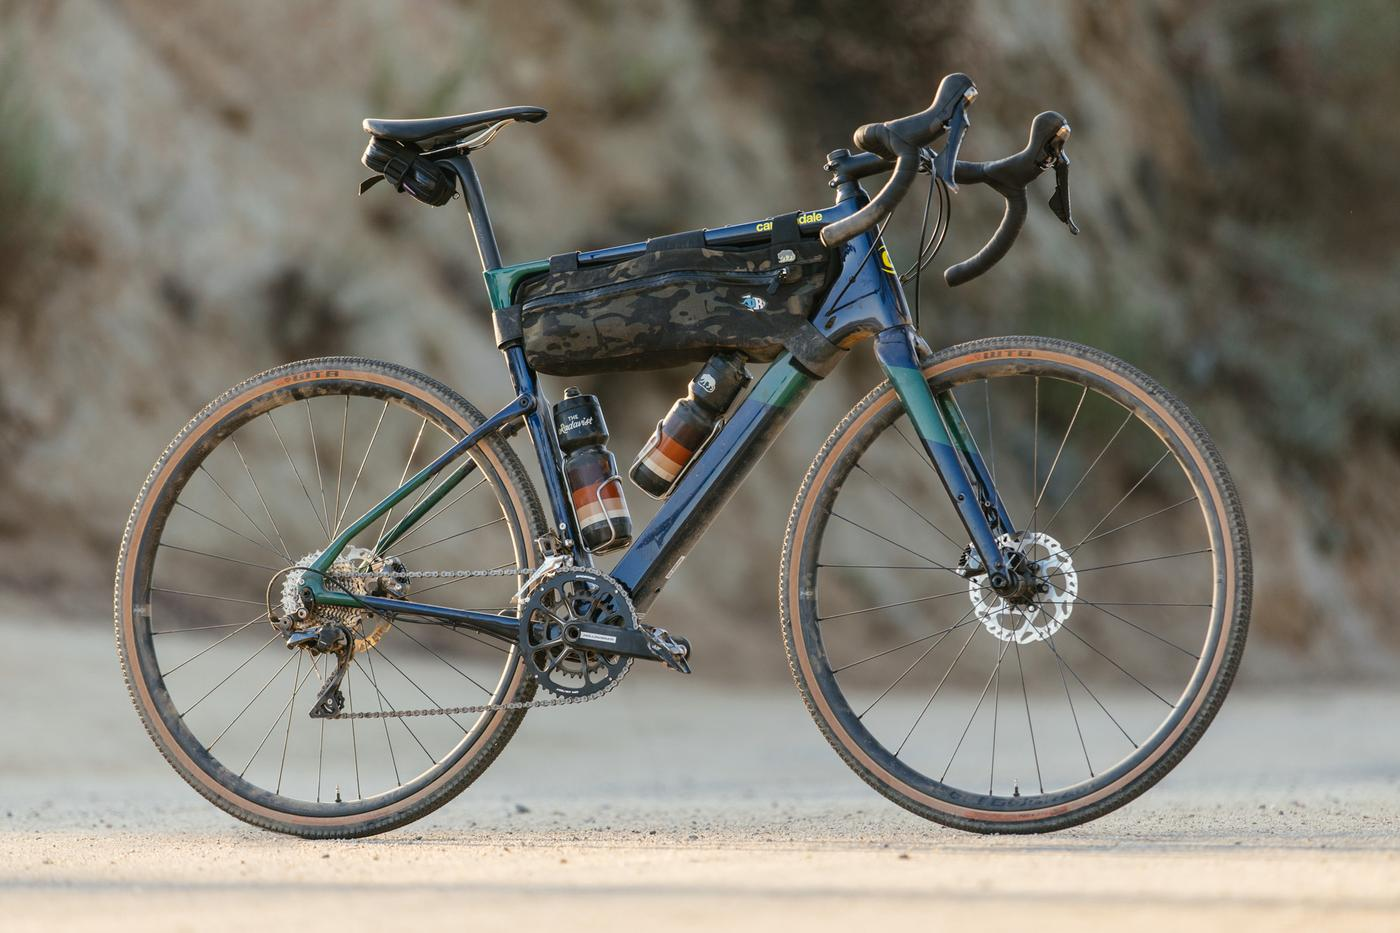 The Cannondale Carbon Topstone has Evolved Past its Aluminum Sibling